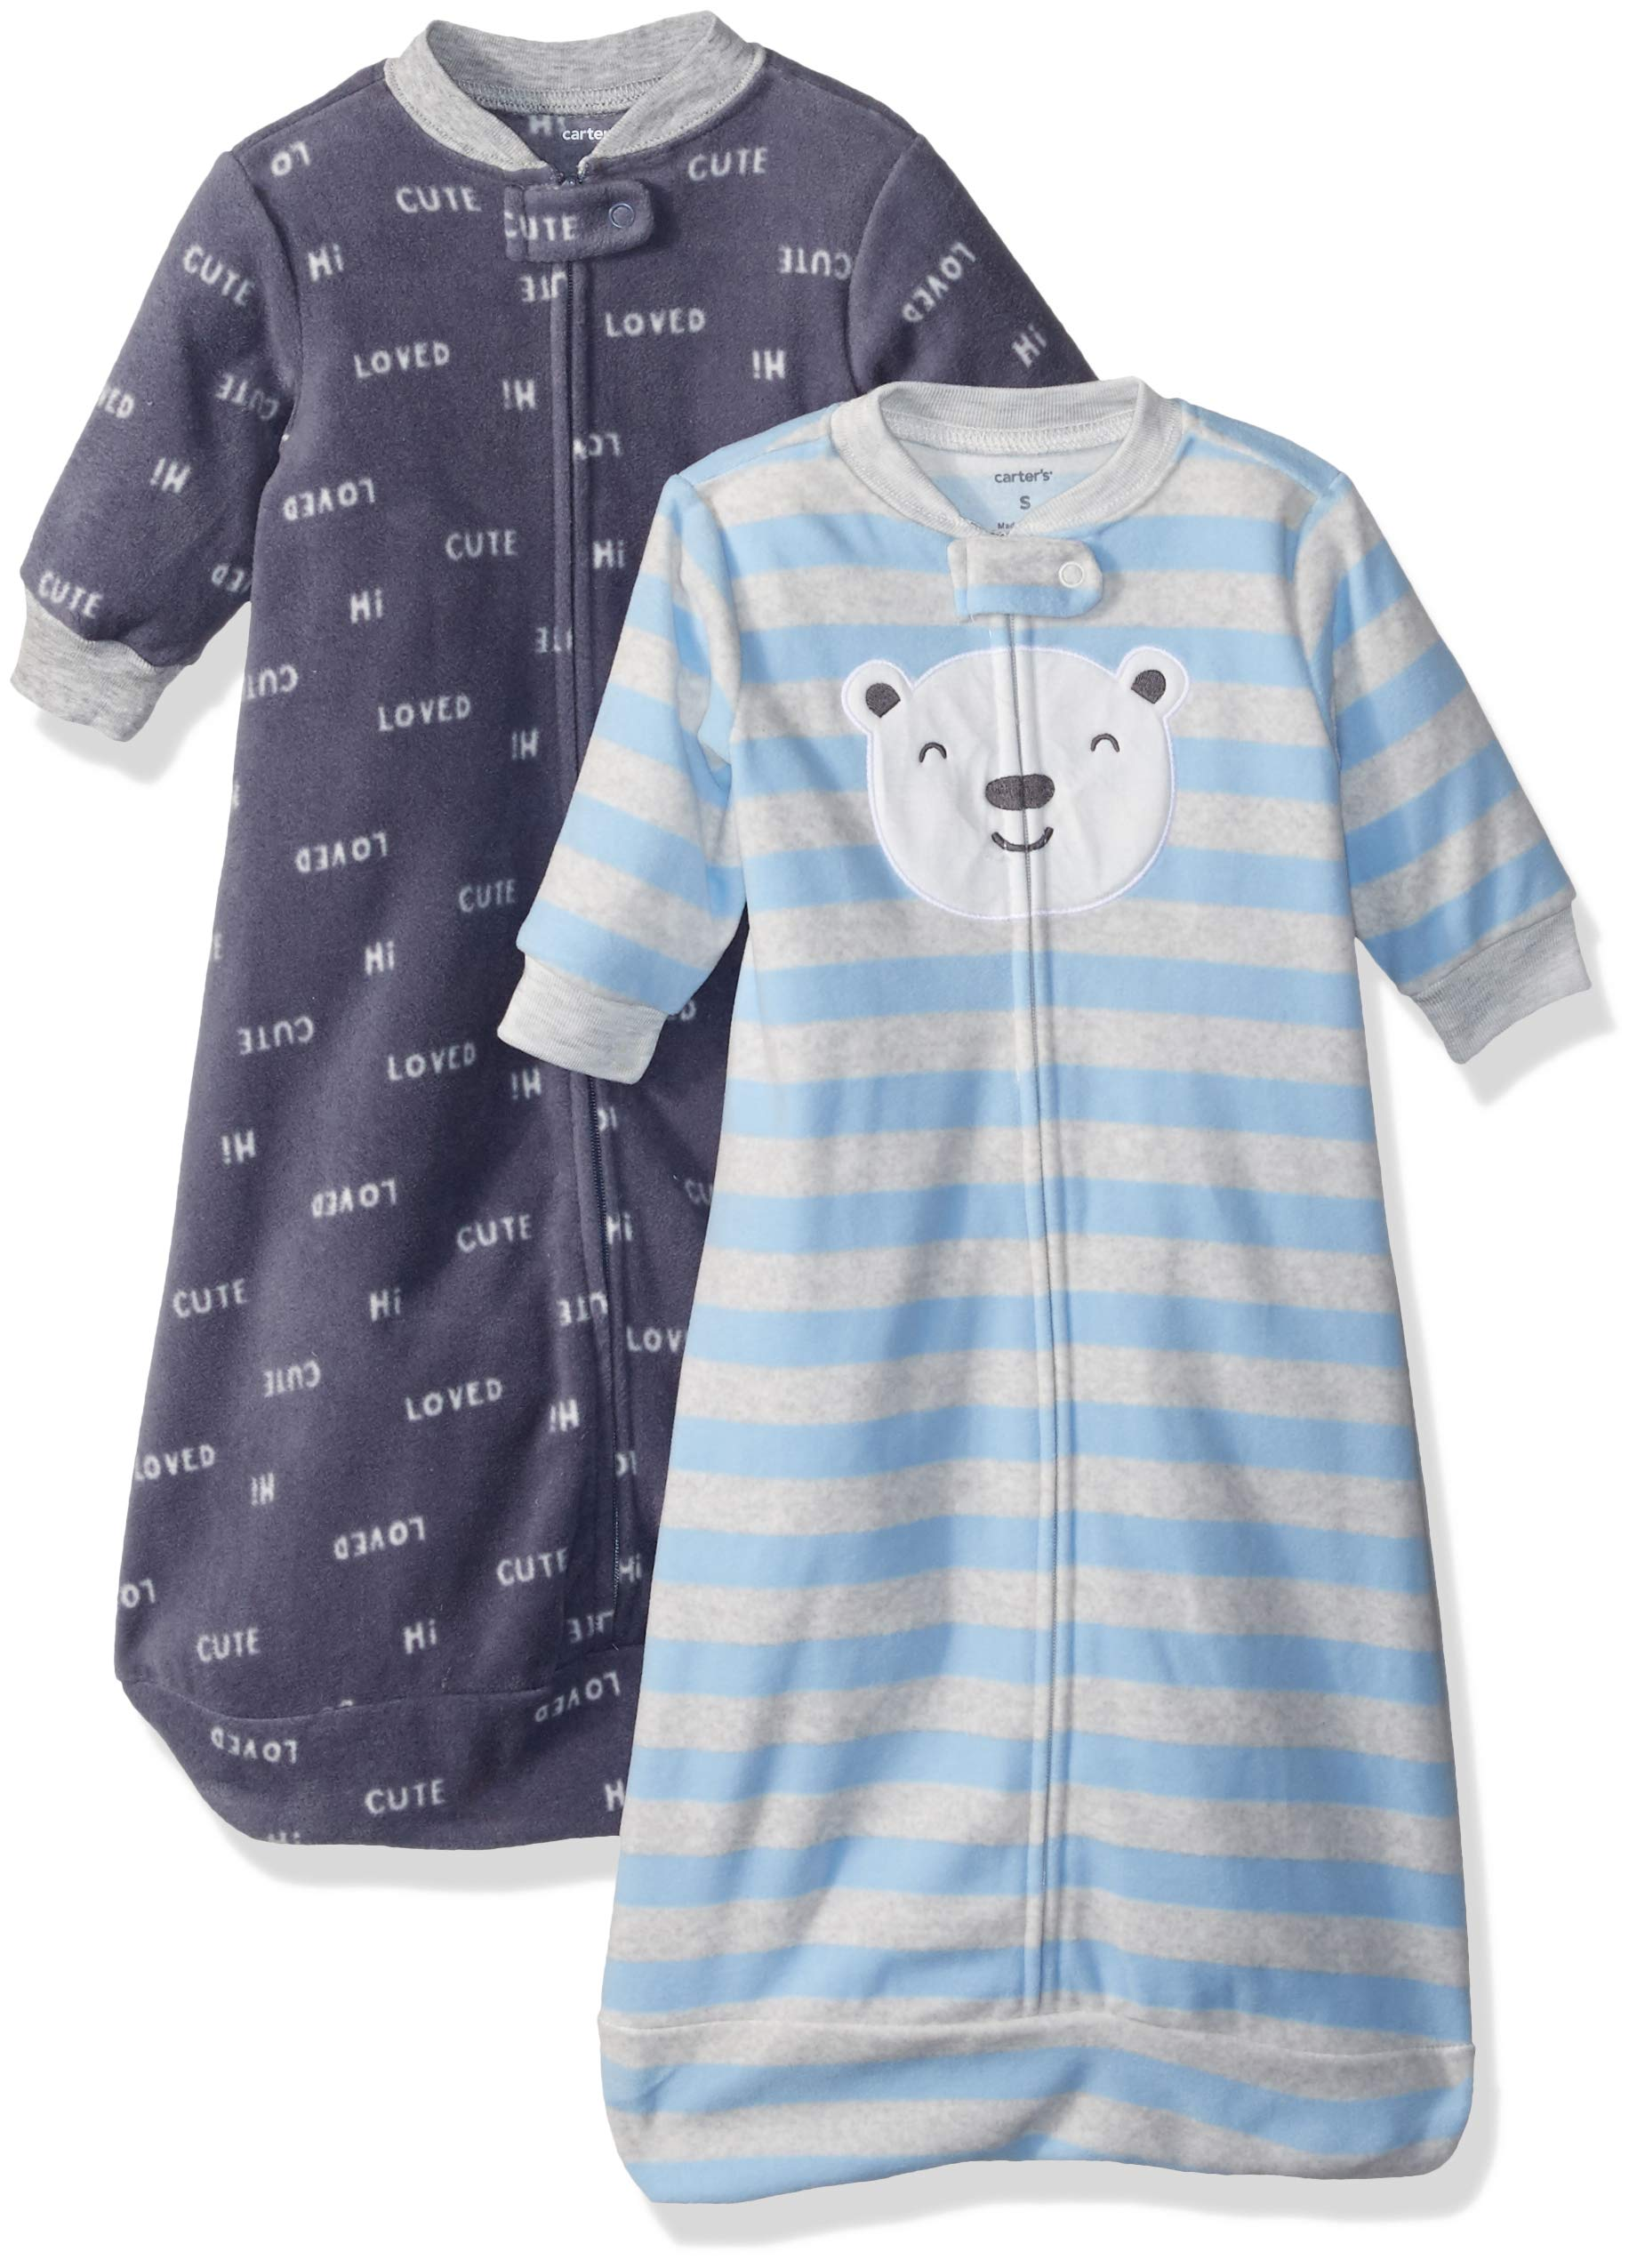 Carter's Baby Boys 2-Pack Microfleece Sleepbag, Blue Bear Script, Small by Carter's